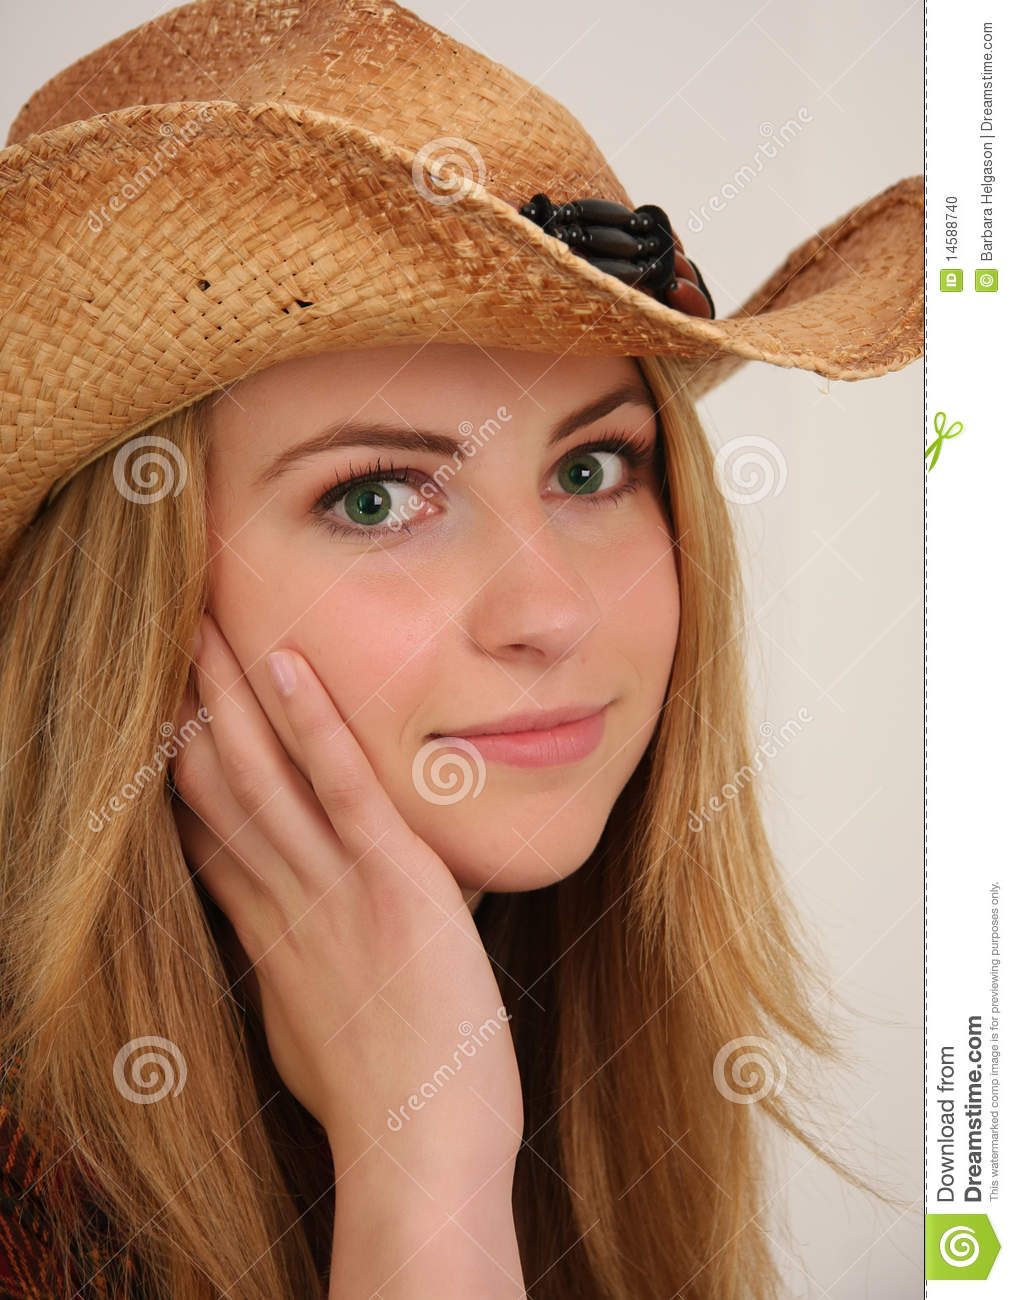 Pics of teen cowgirl